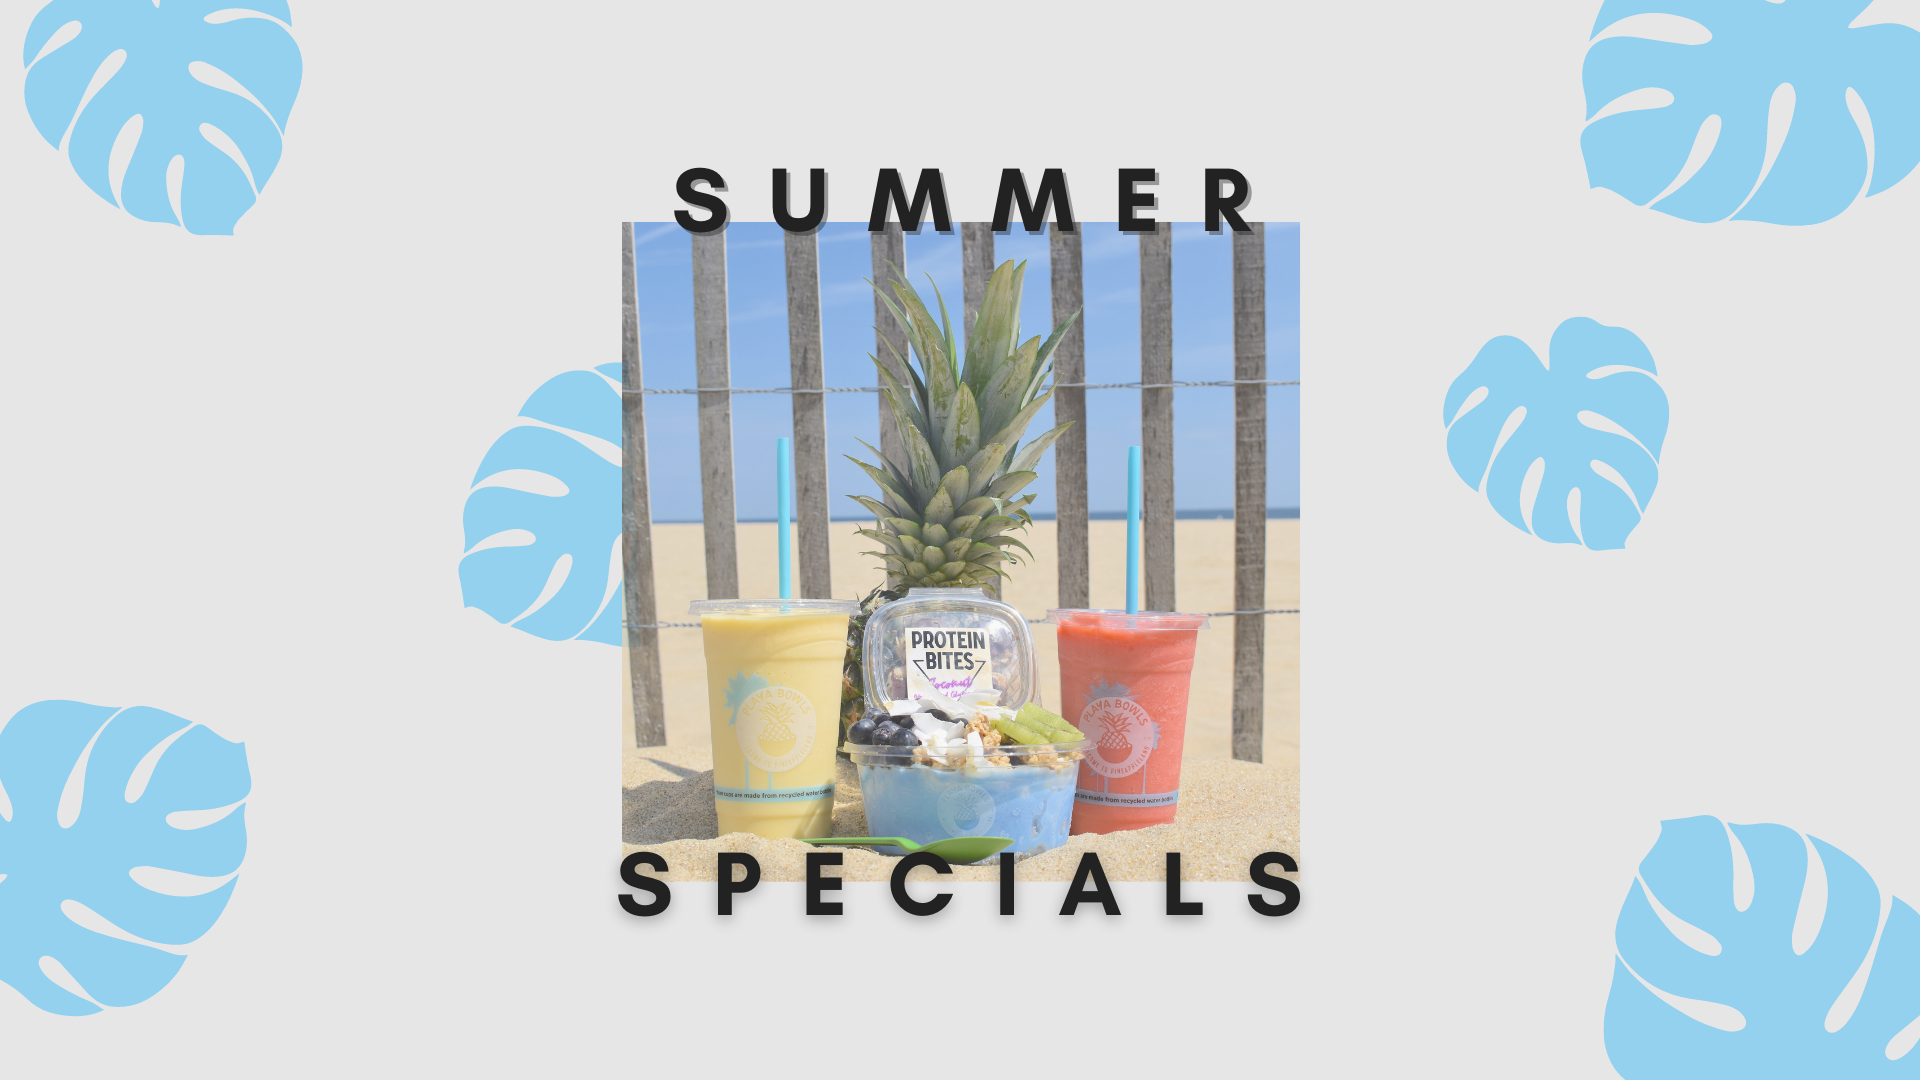 Summertime Specials & the living is E A S Y